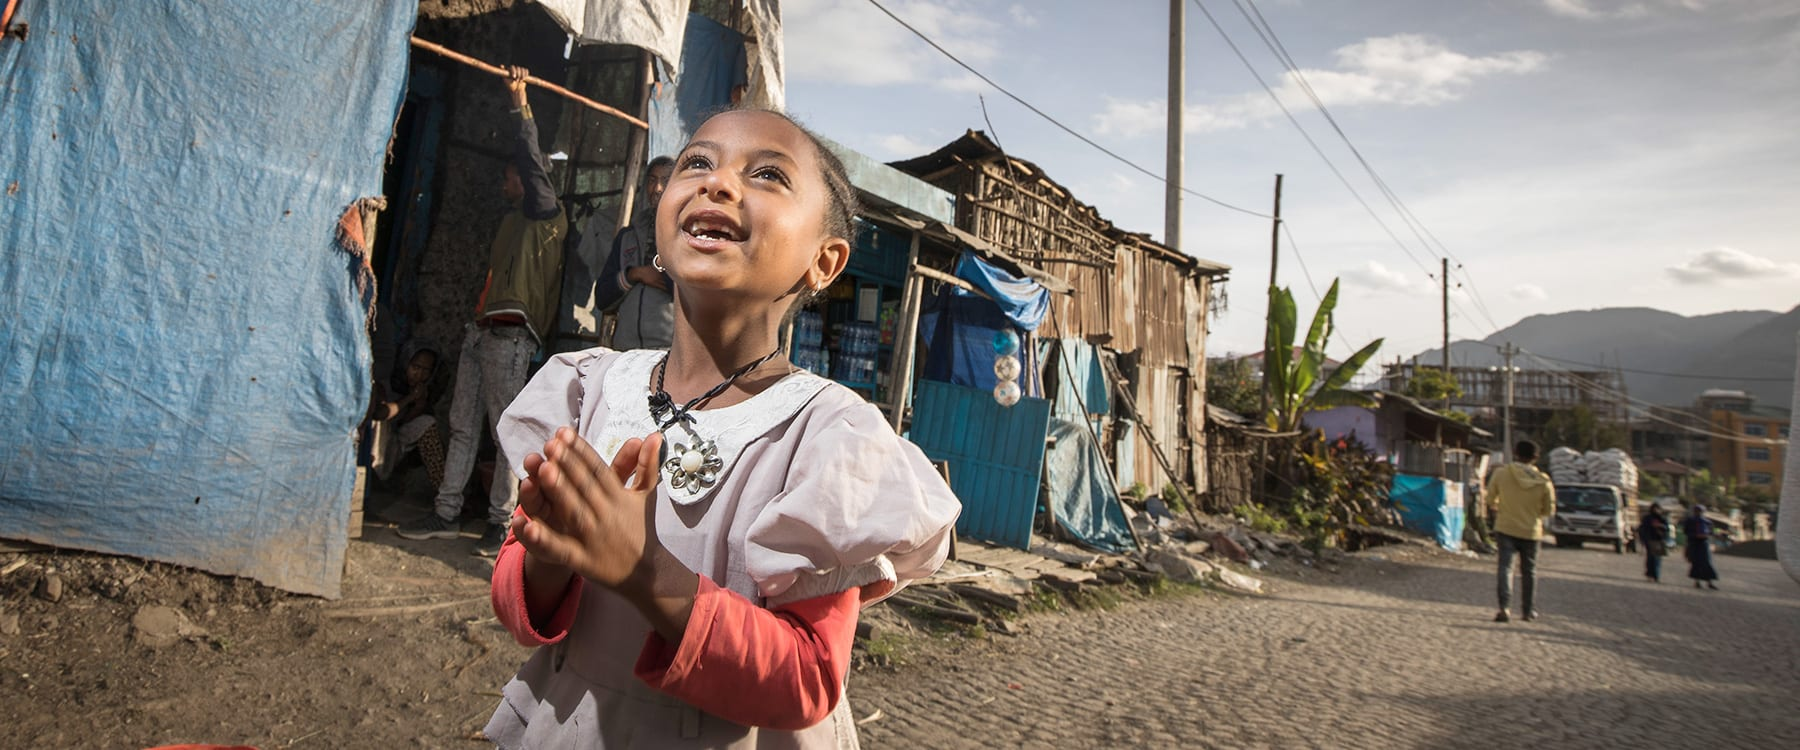 a girl in the city of dessie, ethiopia.